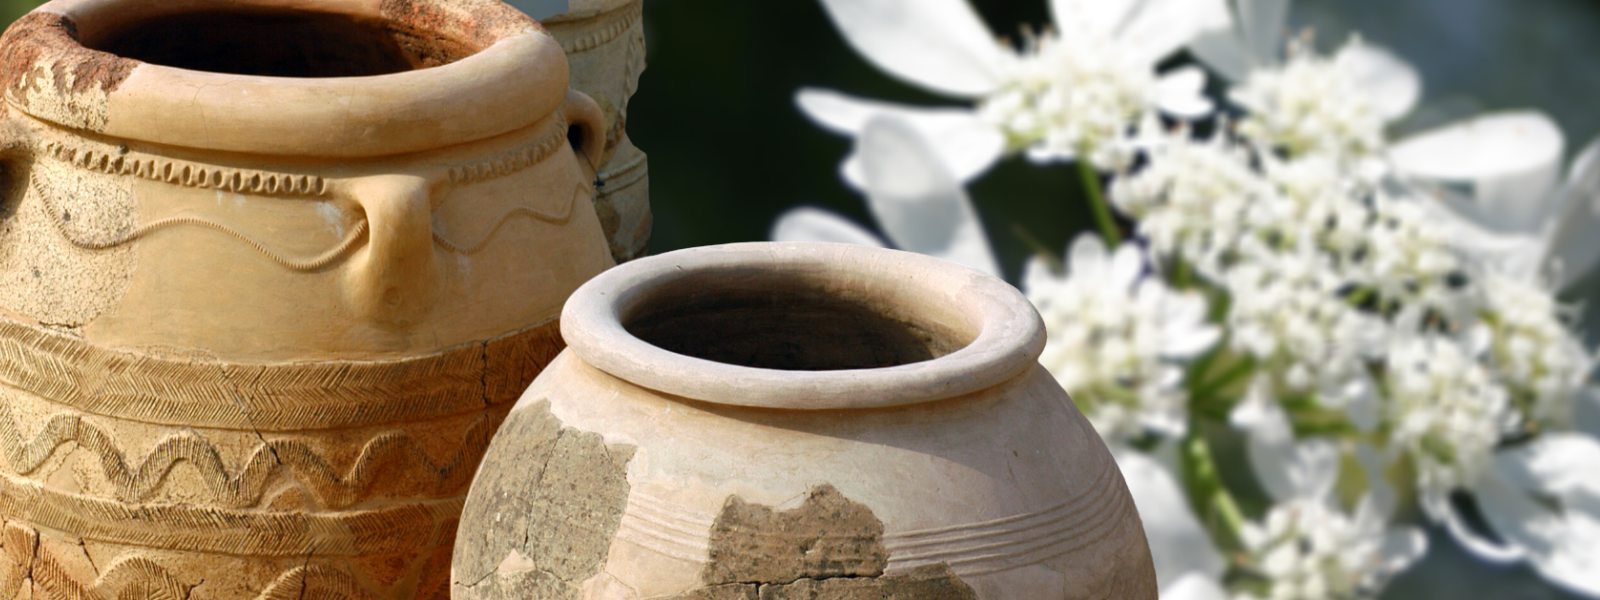 Rustica Gift Minoan Pottery Making History